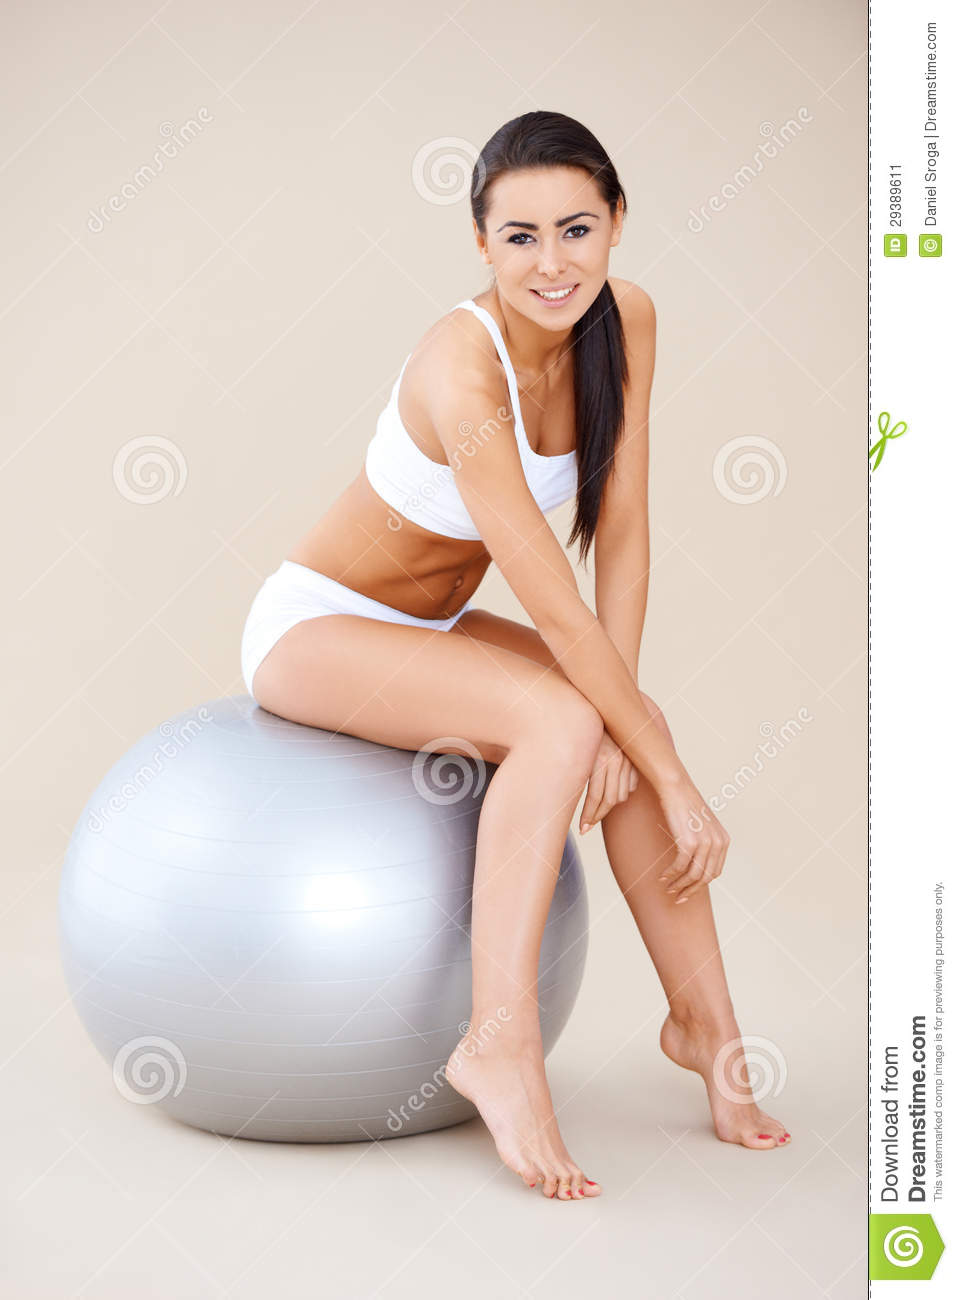 More similar stock images of brunette shapely woman resting